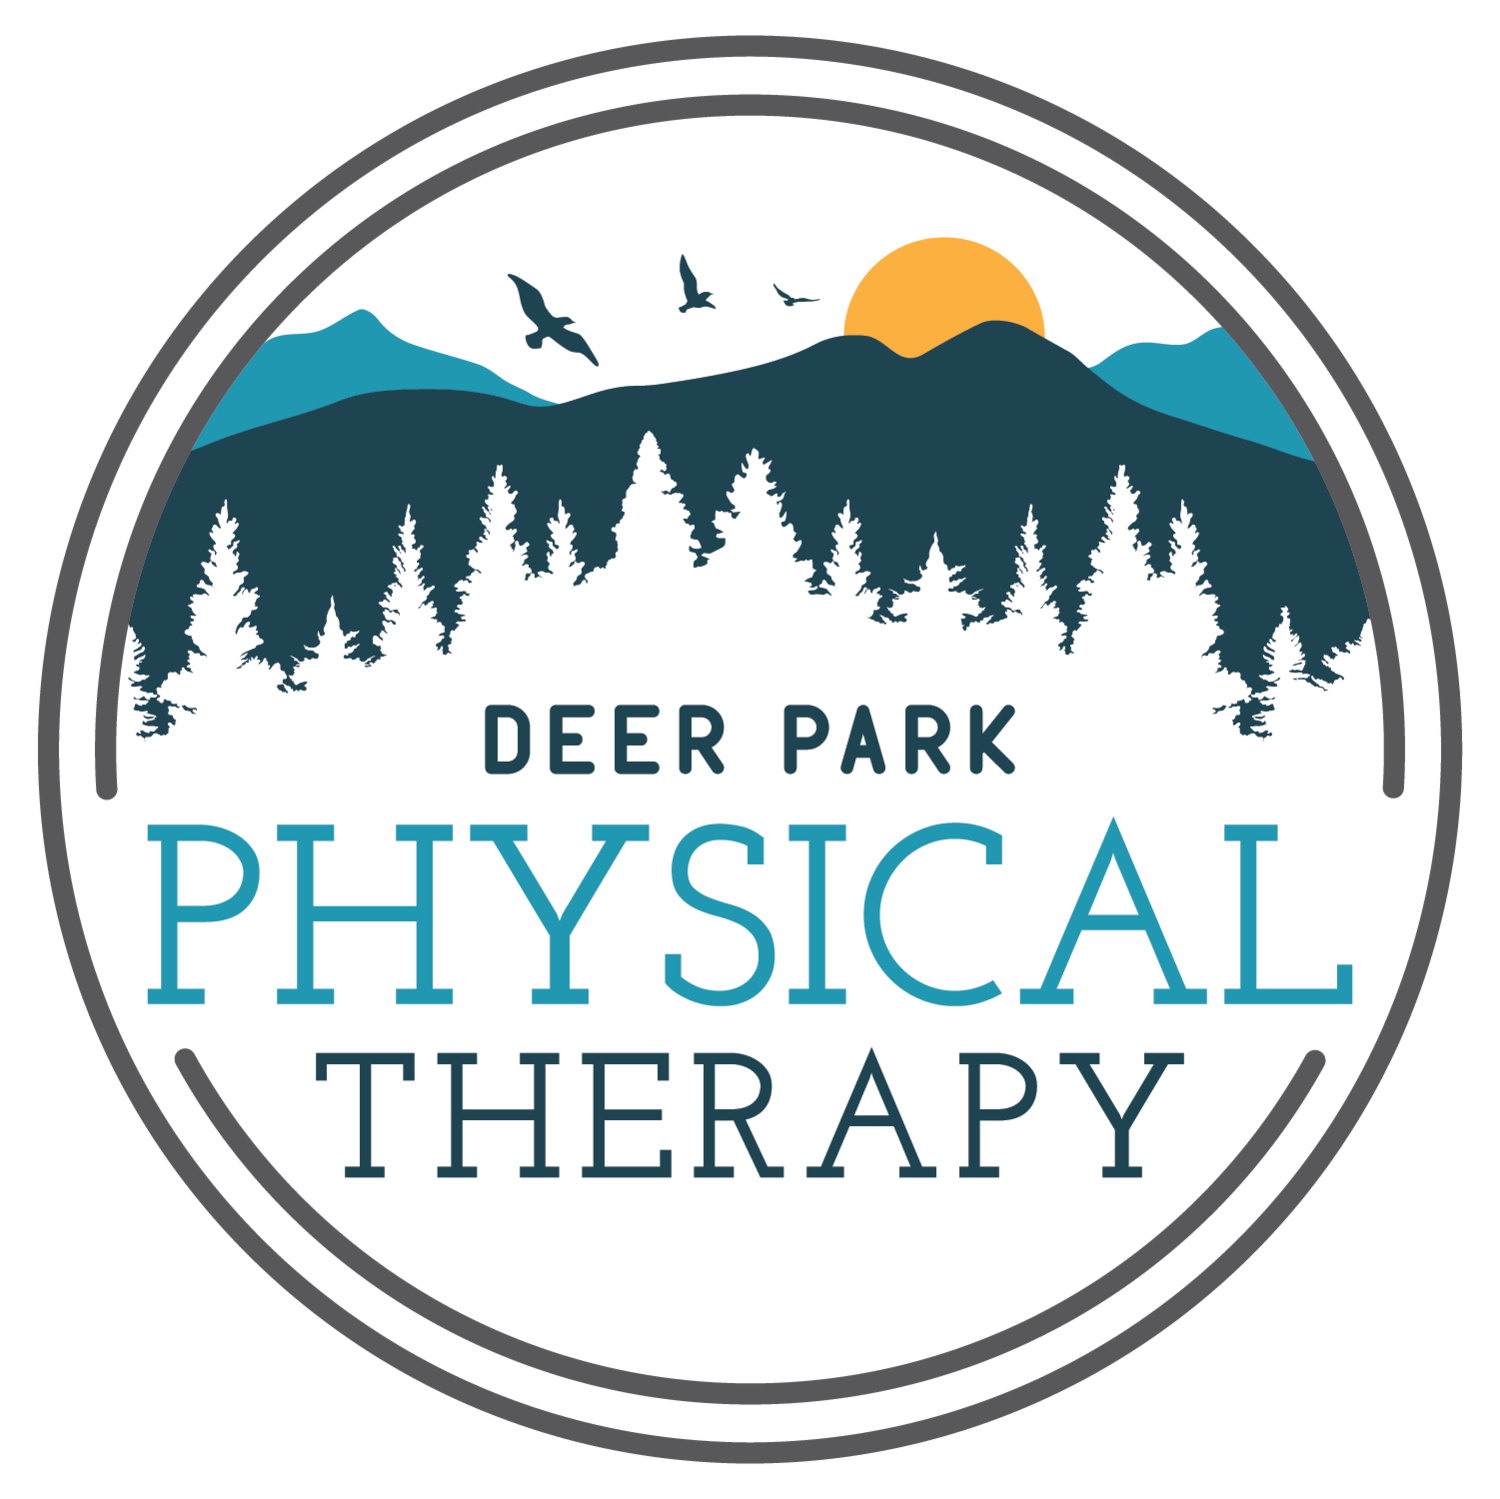 Deer Park Physical Therapy,  Fitness Center, Pool, and Gym